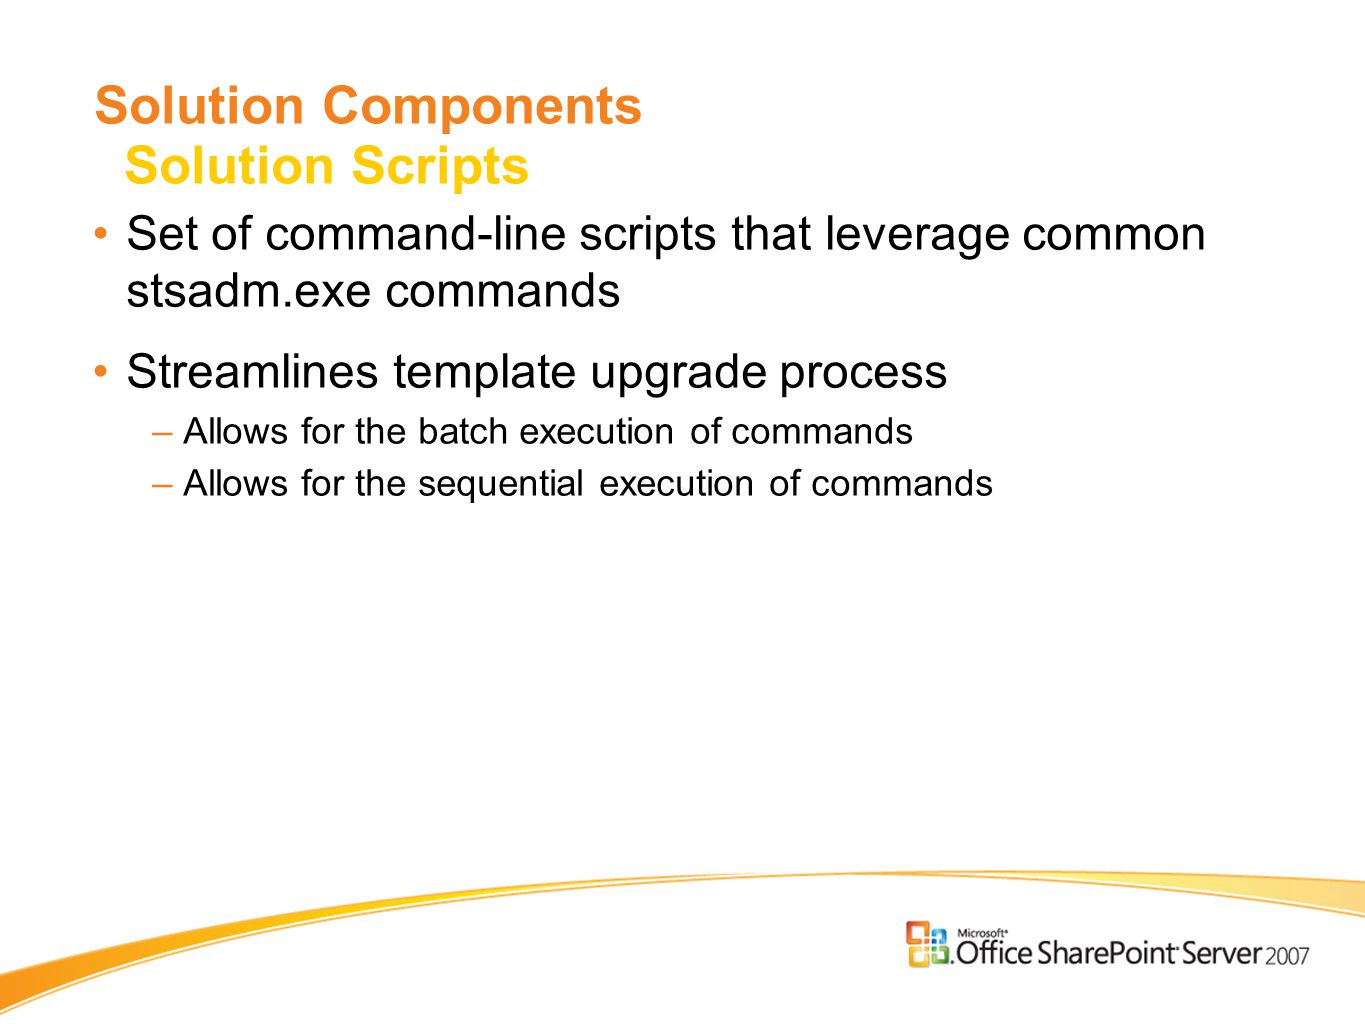 Set of command-line scripts that leverage common stsadm.exe commands Streamlines template upgrade process –Allows for the batch execution of commands –Allows for the sequential execution of commands